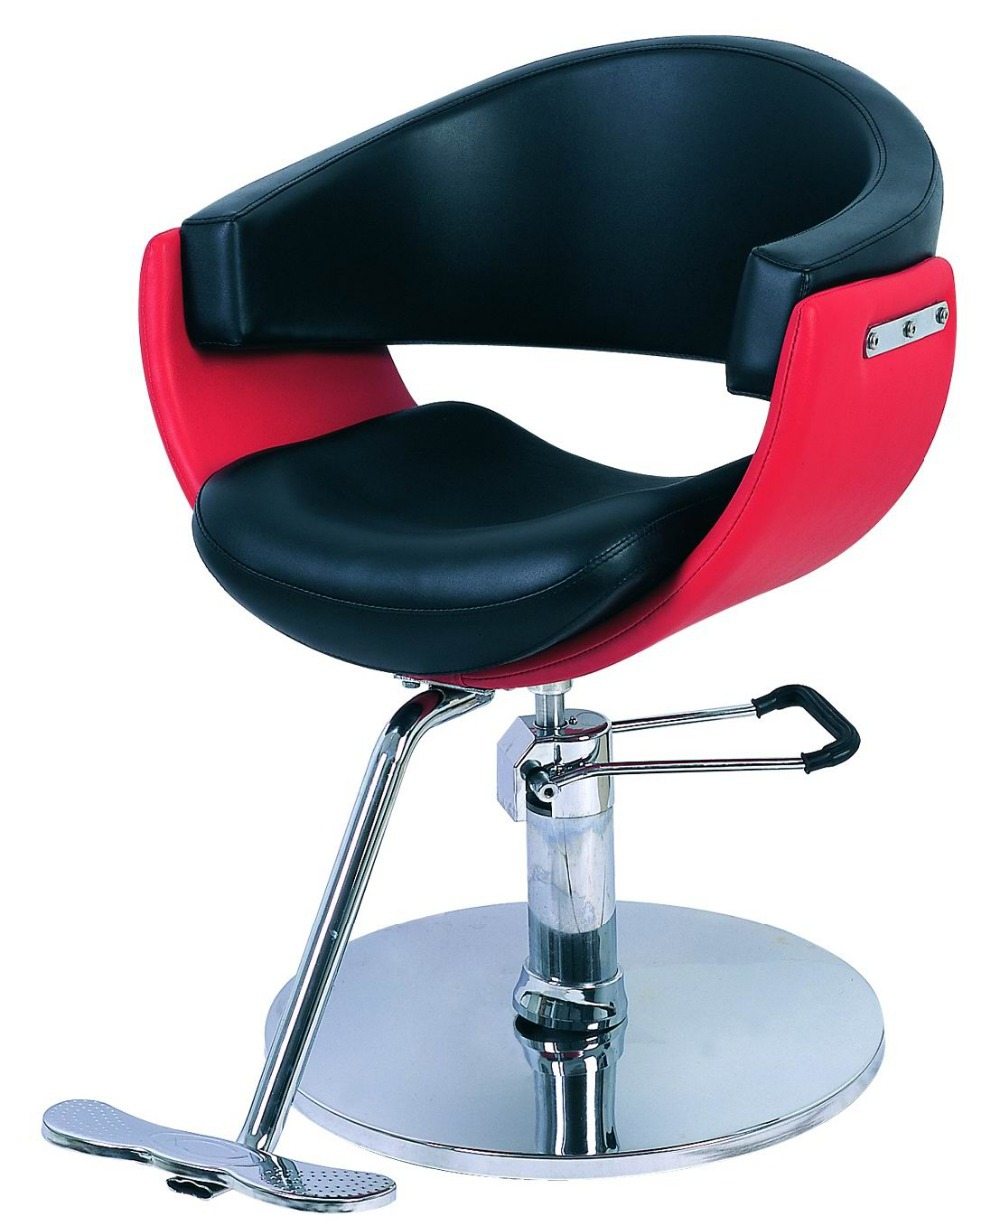 hair style chairs 2015 style barber chairs with footrest in stock used 8866 | 2015 Old style barber chairs with footrest In stock used hair salon styling chairs